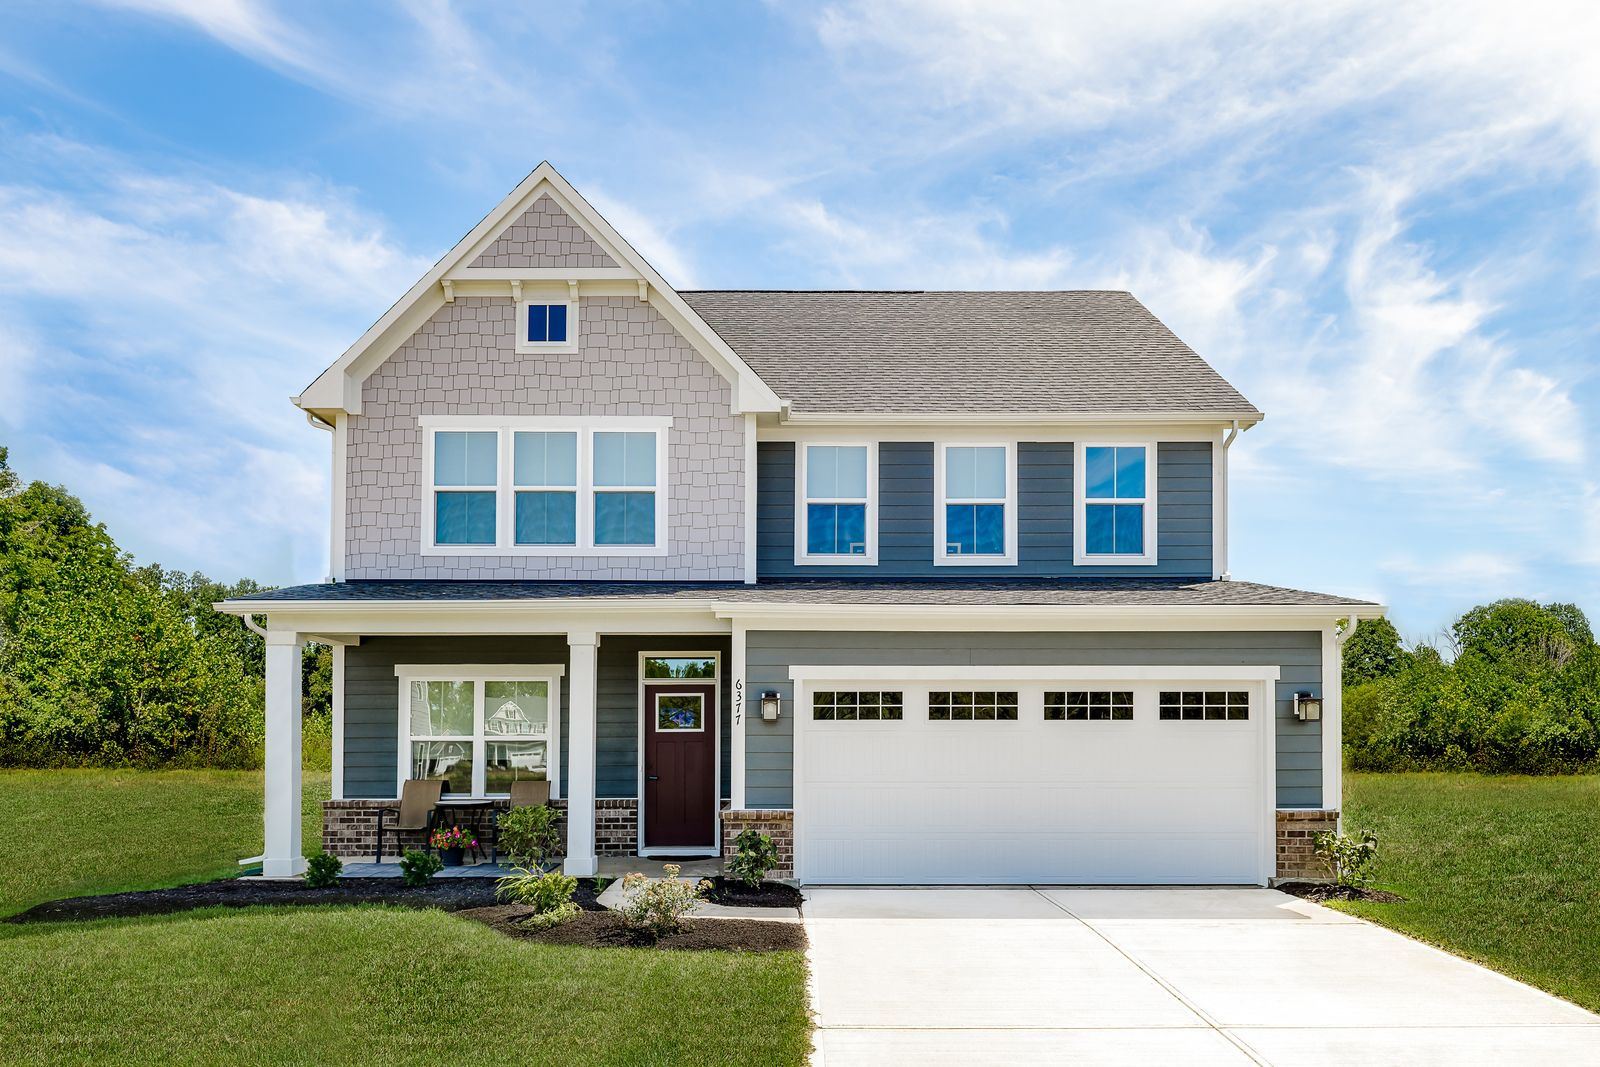 Own a New Home in Westfield at Gristmill Trails:New 2-story homes with basements included in an amenity filled community. Ideally located in Westfield, near US-31 and SR-32.Click here to schedule your visit to Gristmill Trails.